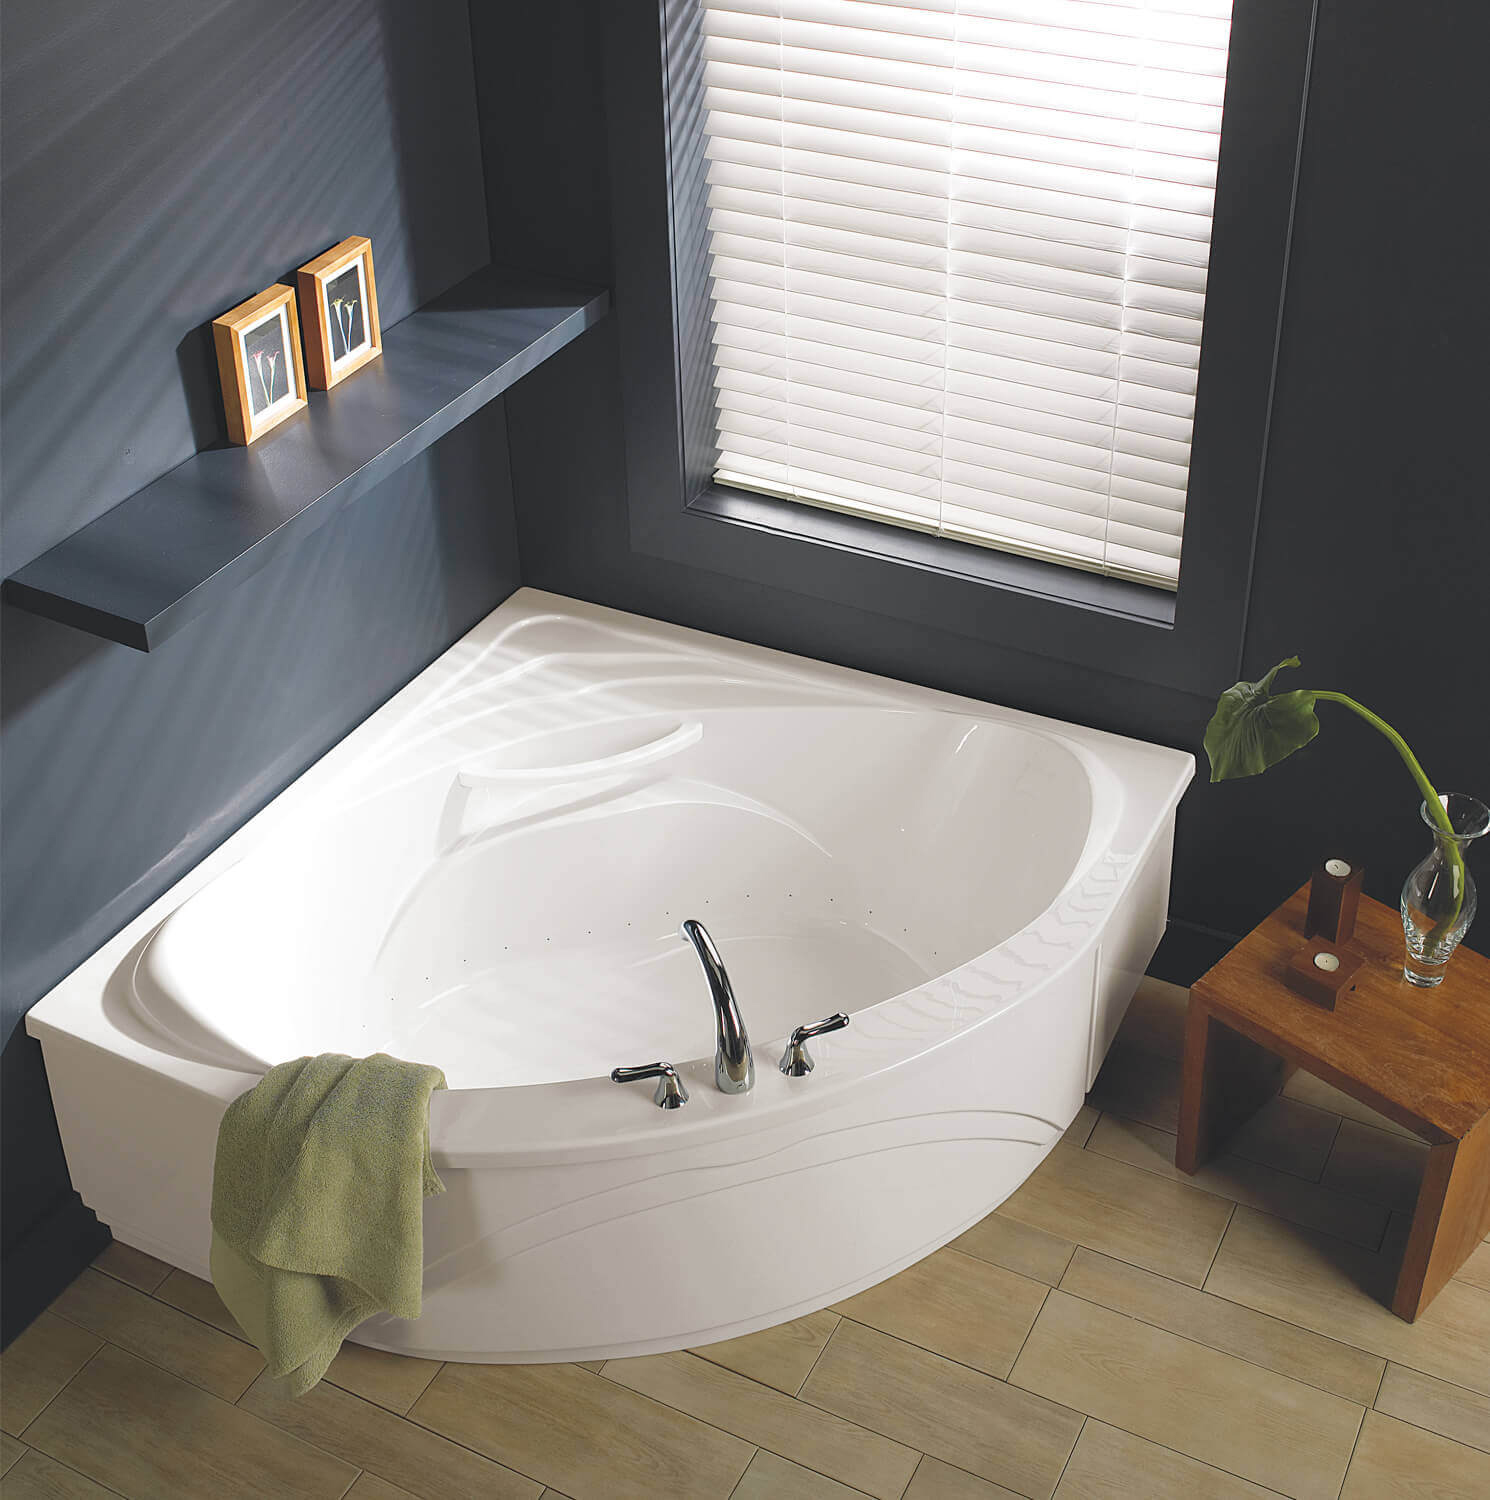 Bainultra Sensation corner drop-in air jet bathtub for your master bathroom